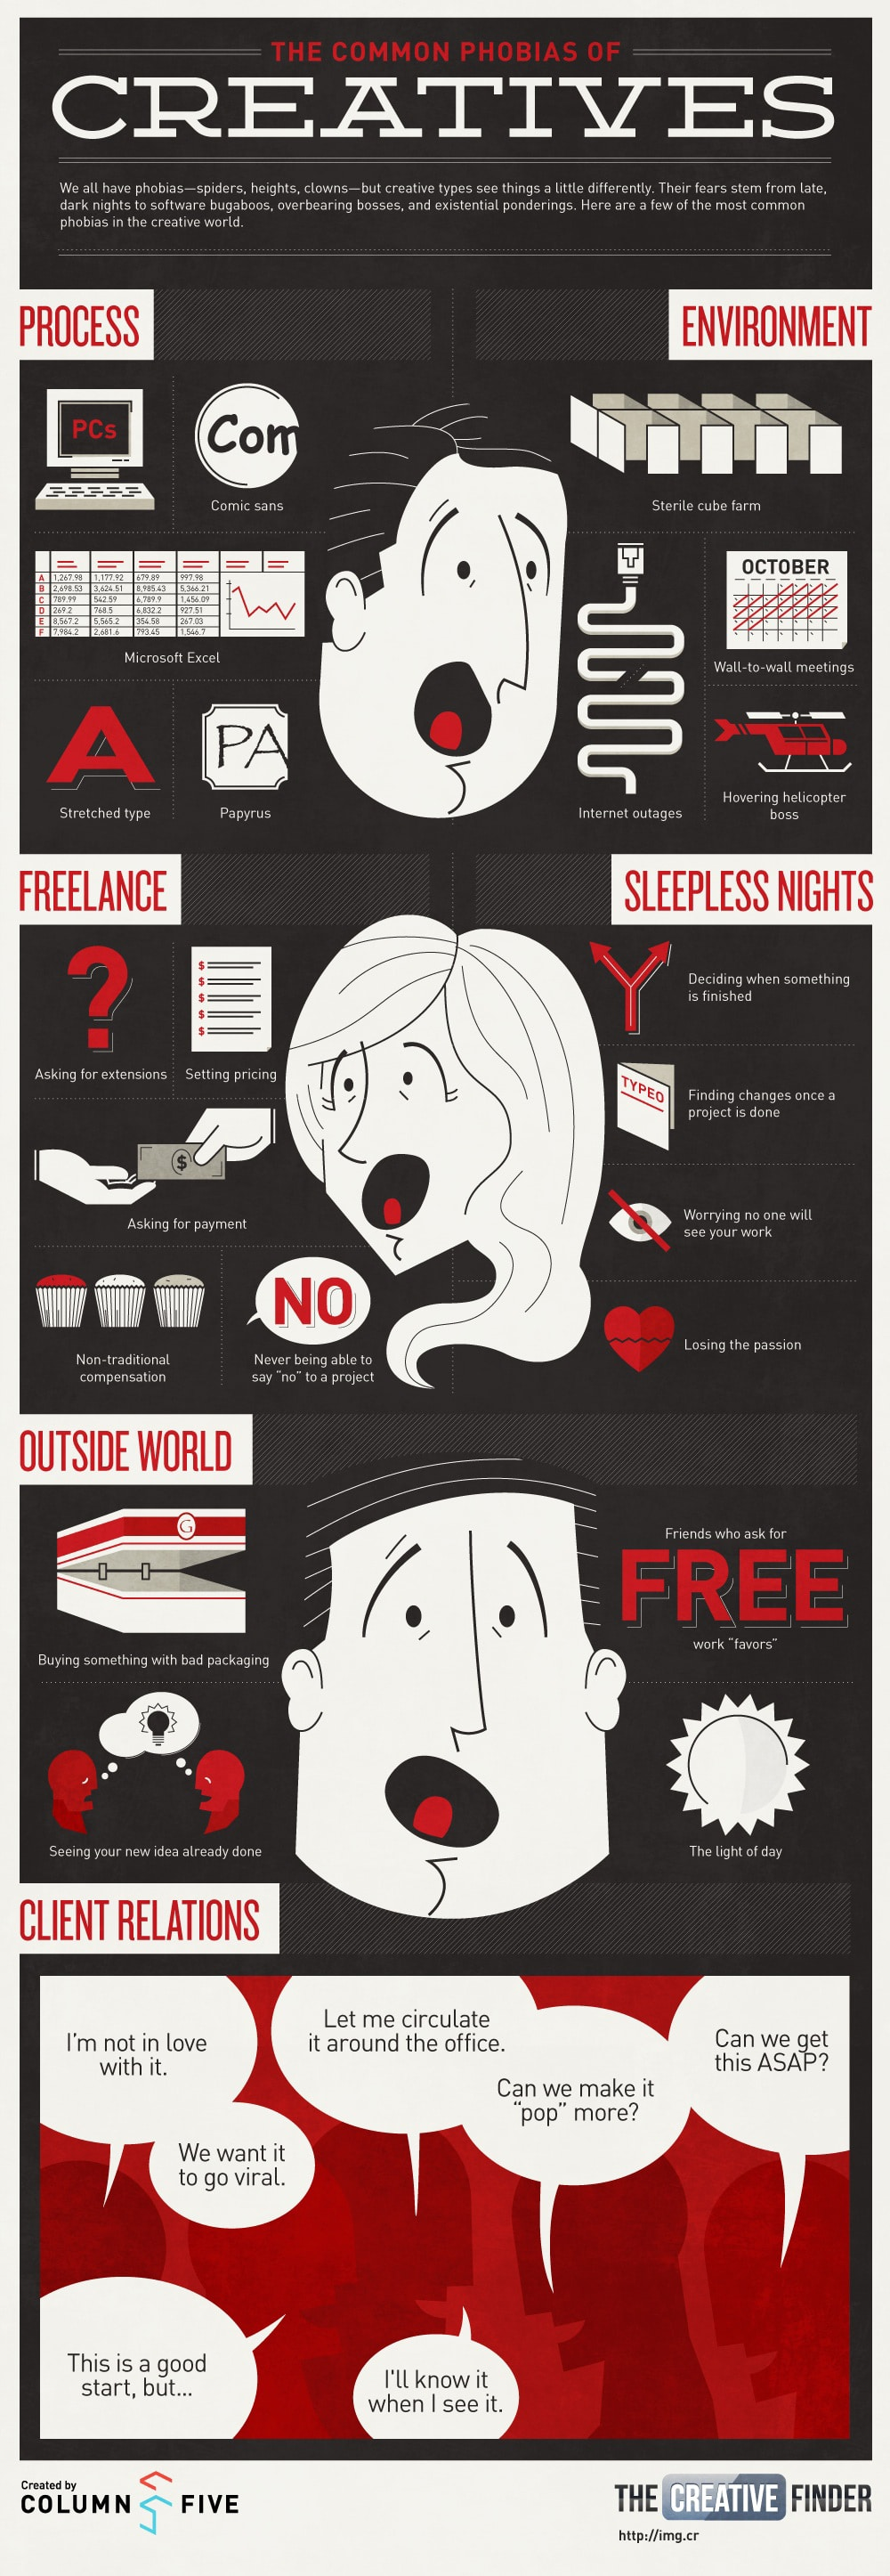 The Most Common Phobias In Creative People [Infographic]